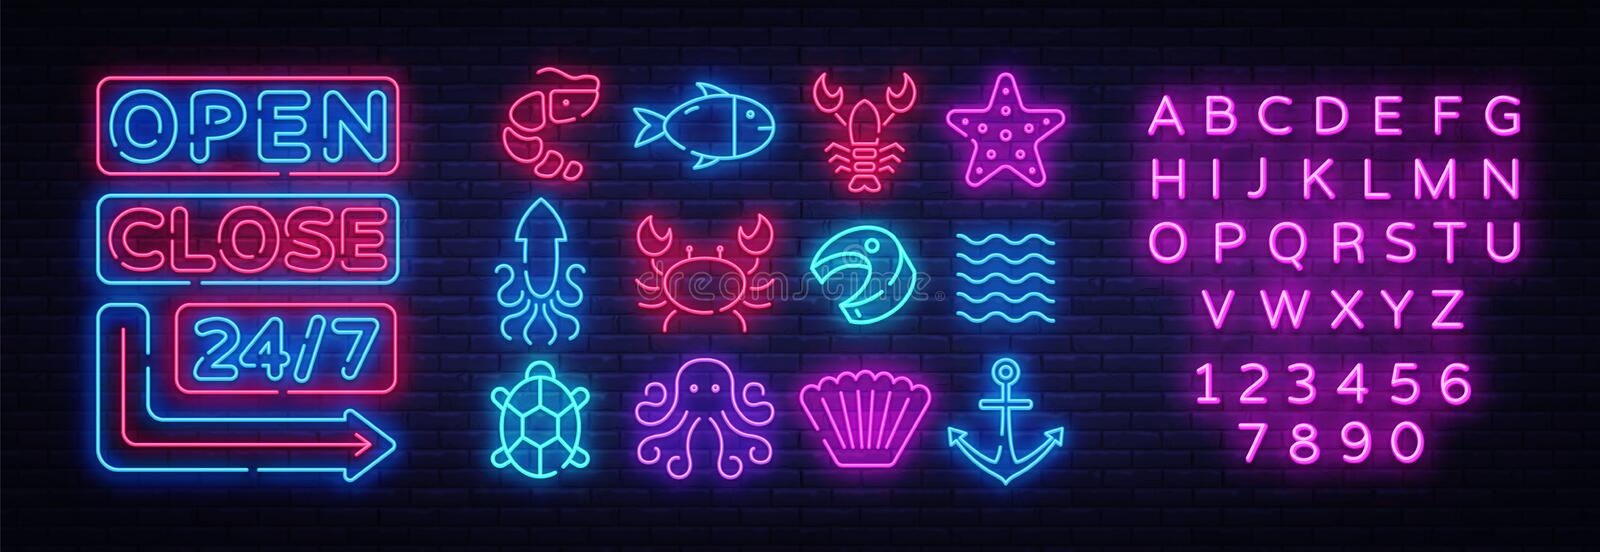 Seafood icons set. Seafood collection neon signs. Open Close Bright signboards, light banner. Neon isolated icon, emblem vector illustration